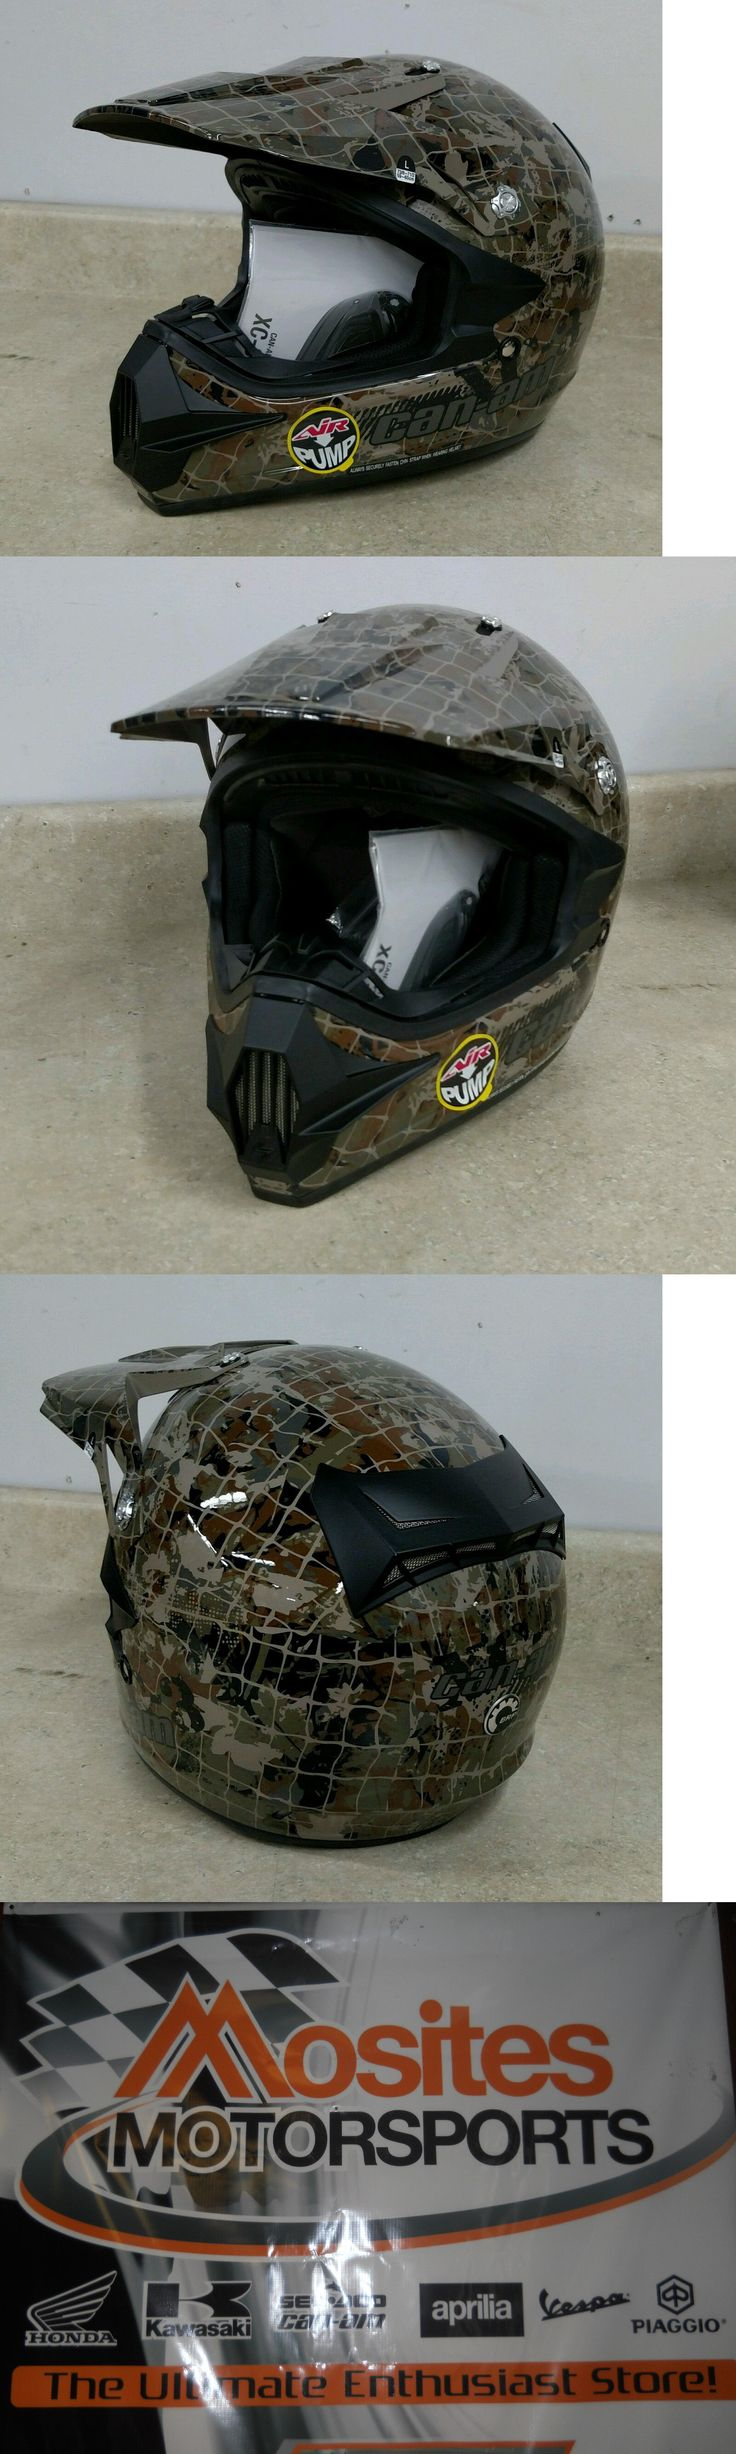 Other Winter Sport Clothing 16060: Can Am Atv Xc-3 Camo Helmet - 4476920937 #4476921237 Free Shipping Sale -> BUY IT NOW ONLY: $68.0 on eBay!